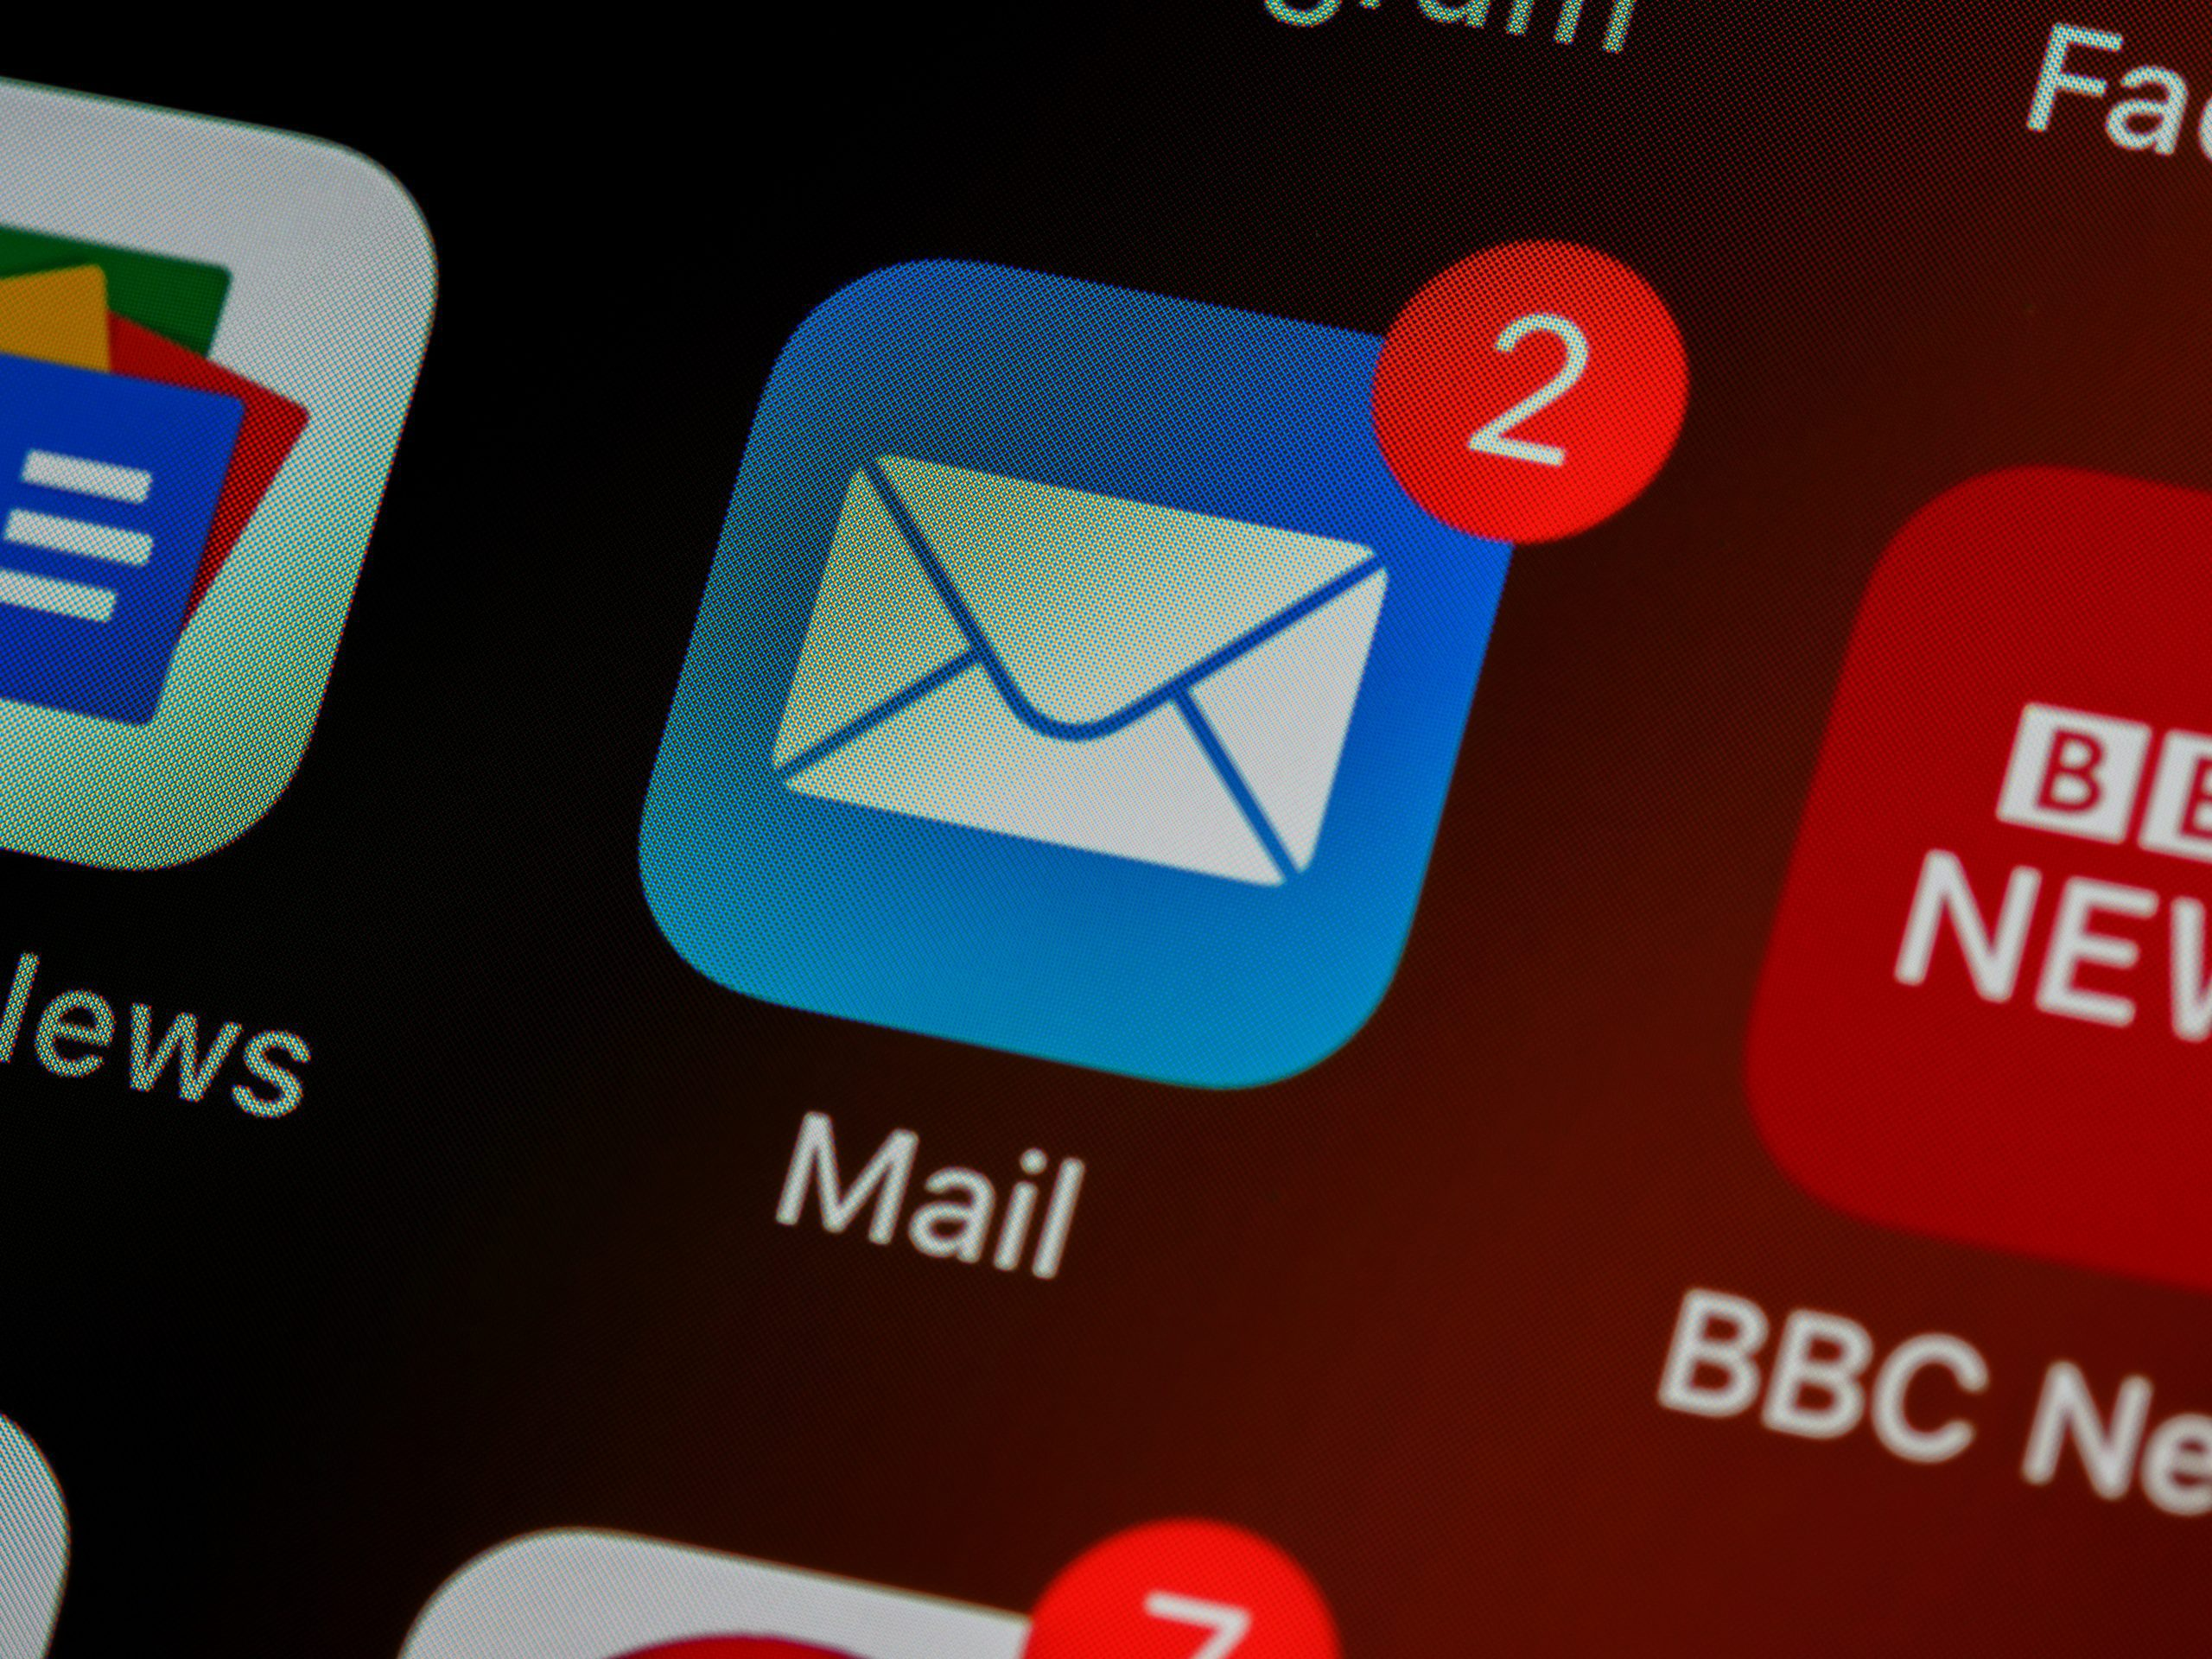 Cold emails to reach B2B targets should be short, coherent and targeted to your audience.